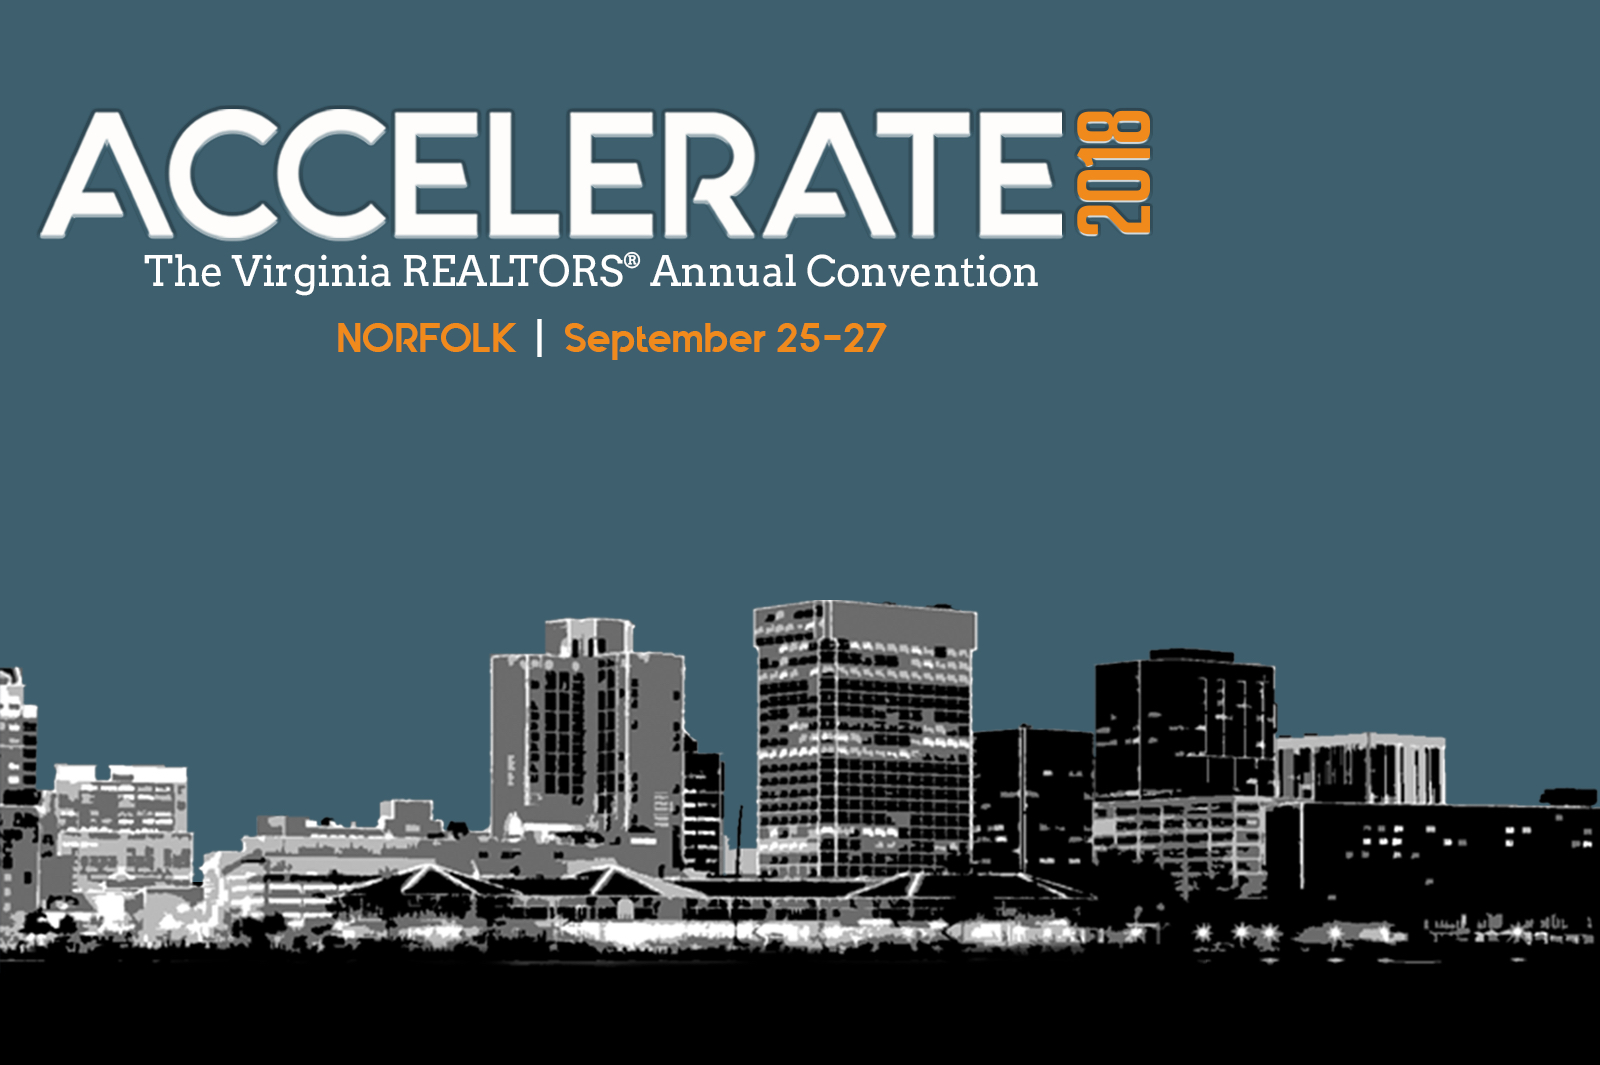 Registration for <strong>ACCELERATE 2018 </strong>: The Virginia REALTORS<sup>®</sup> Annual Convention is now open!